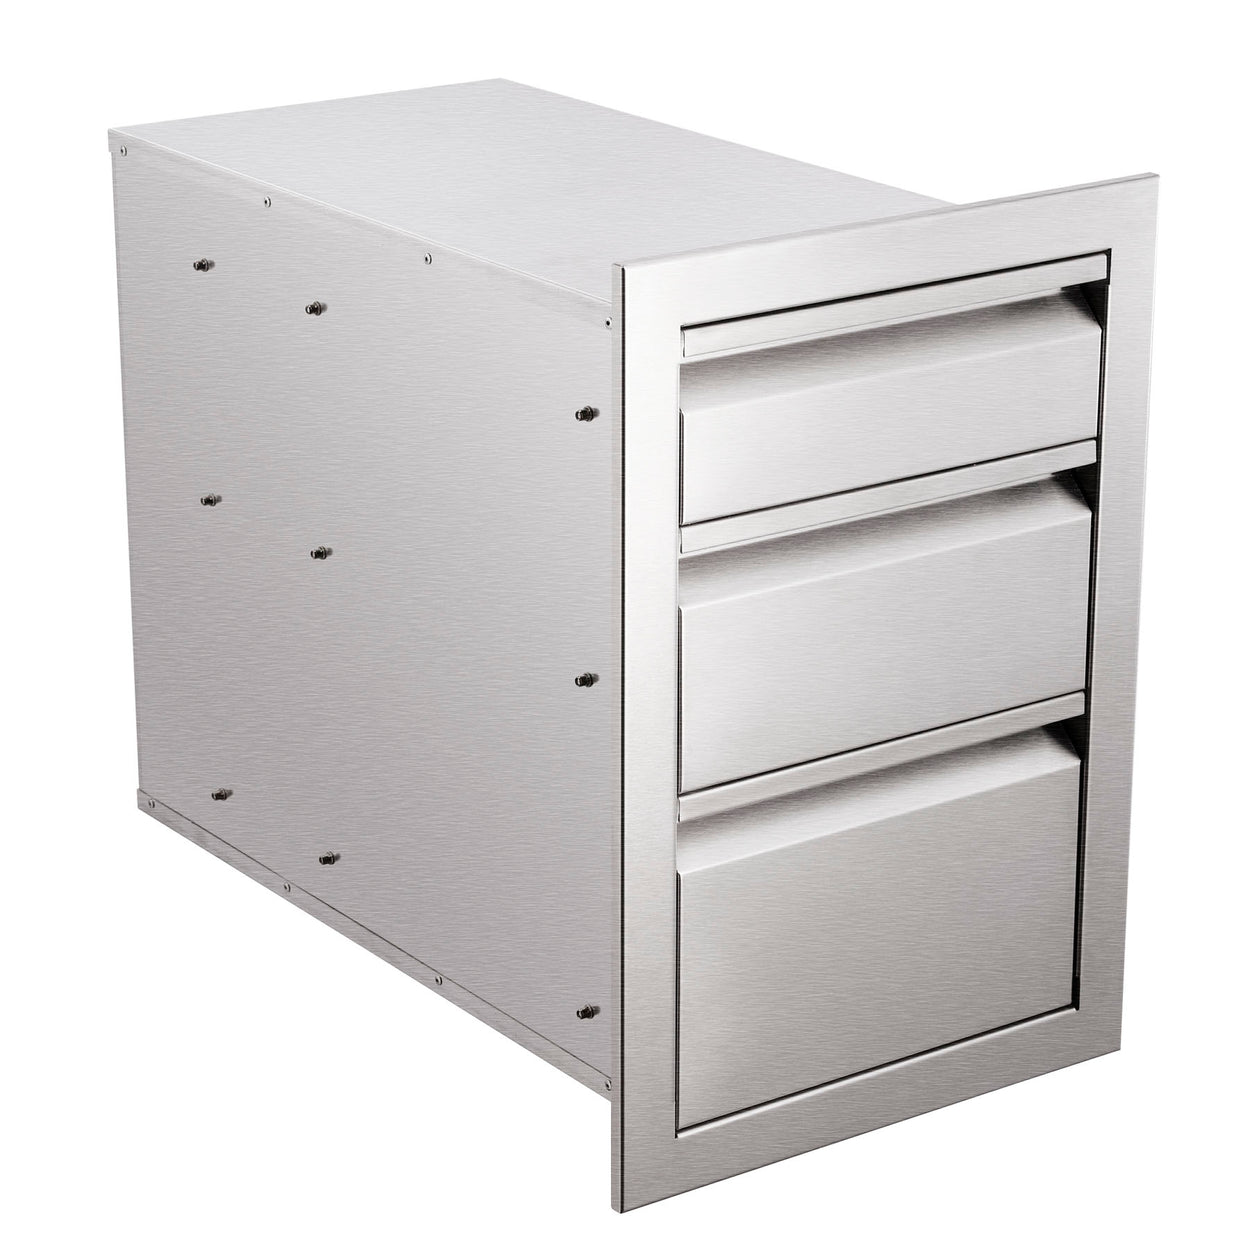 18in Triple Worktable Drawer BBQ Access Drawer Storage with Invisible Handles